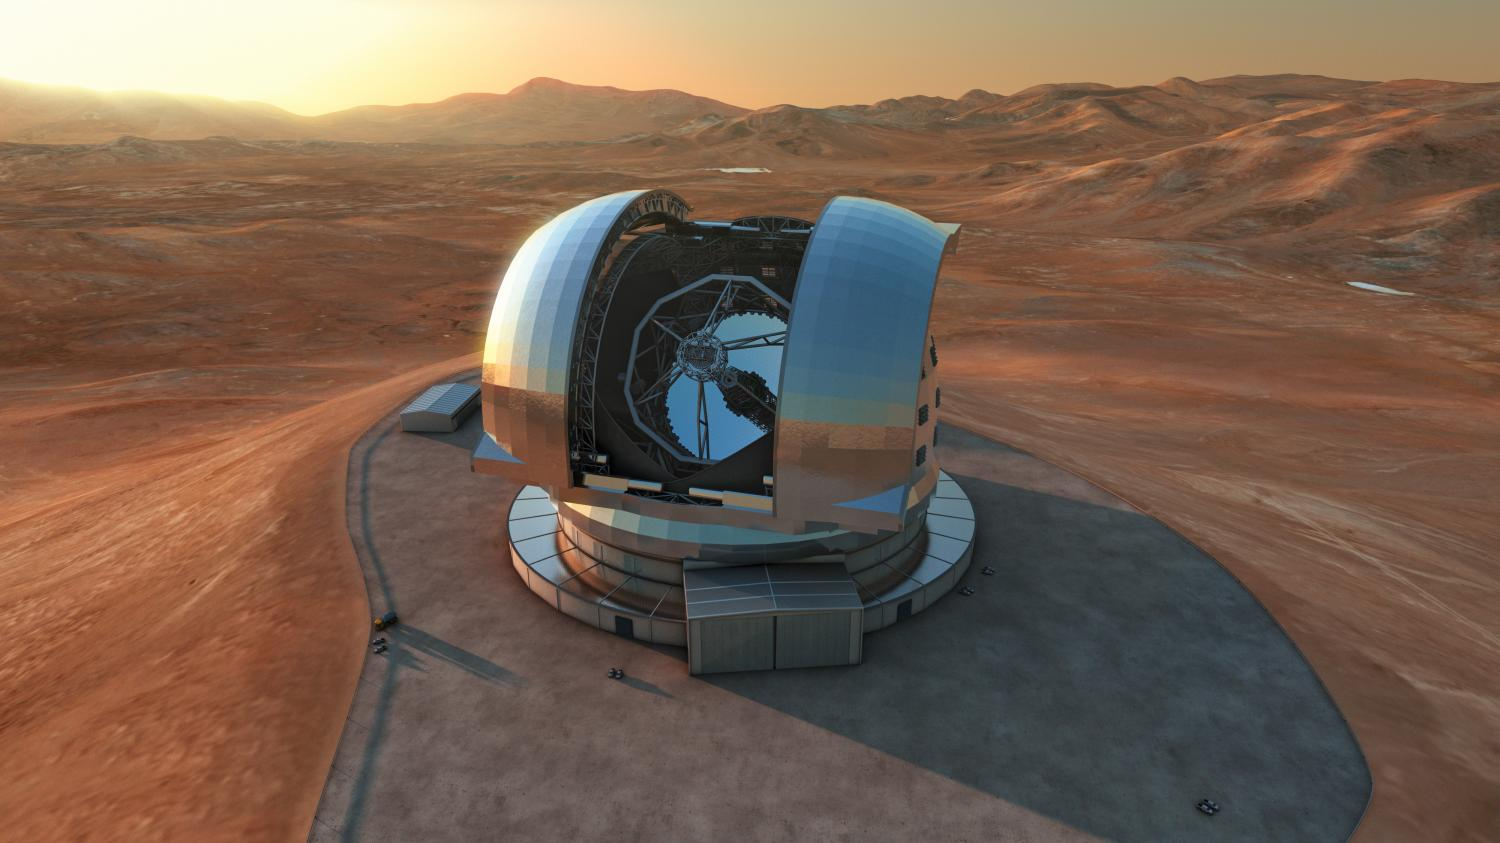 World's first super telescope to decode mysteries of universe